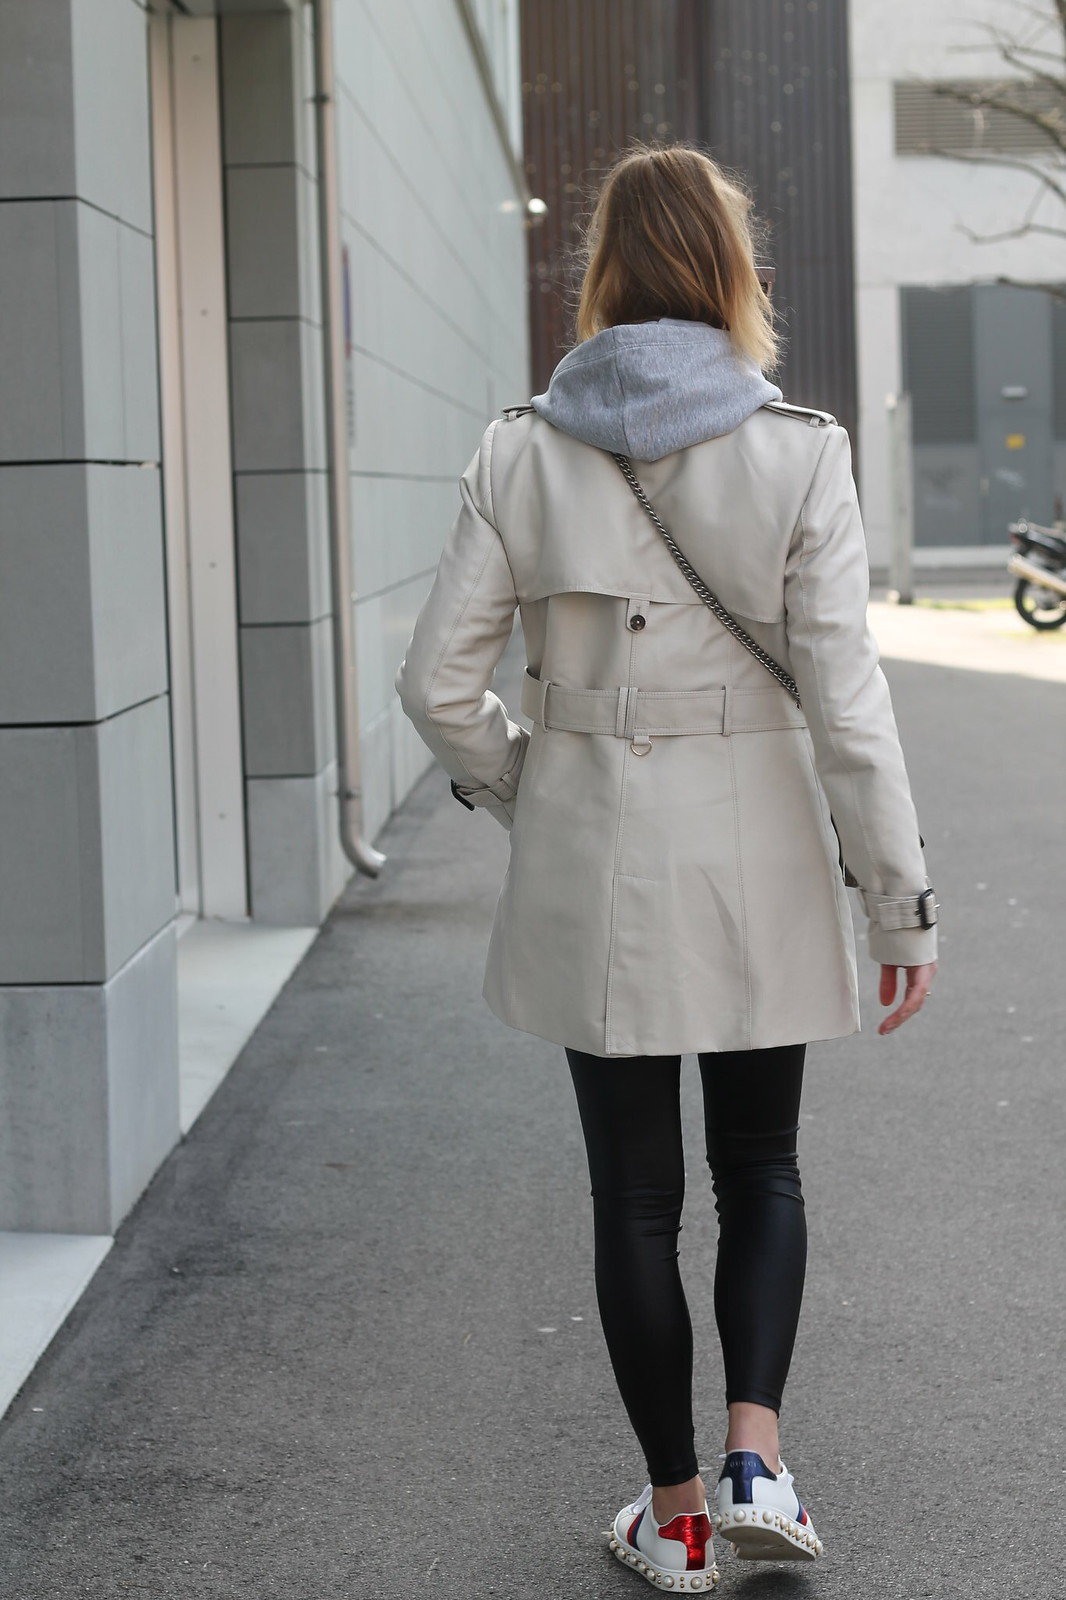 trenchcoat-whole-outfit-back-wiebkembg